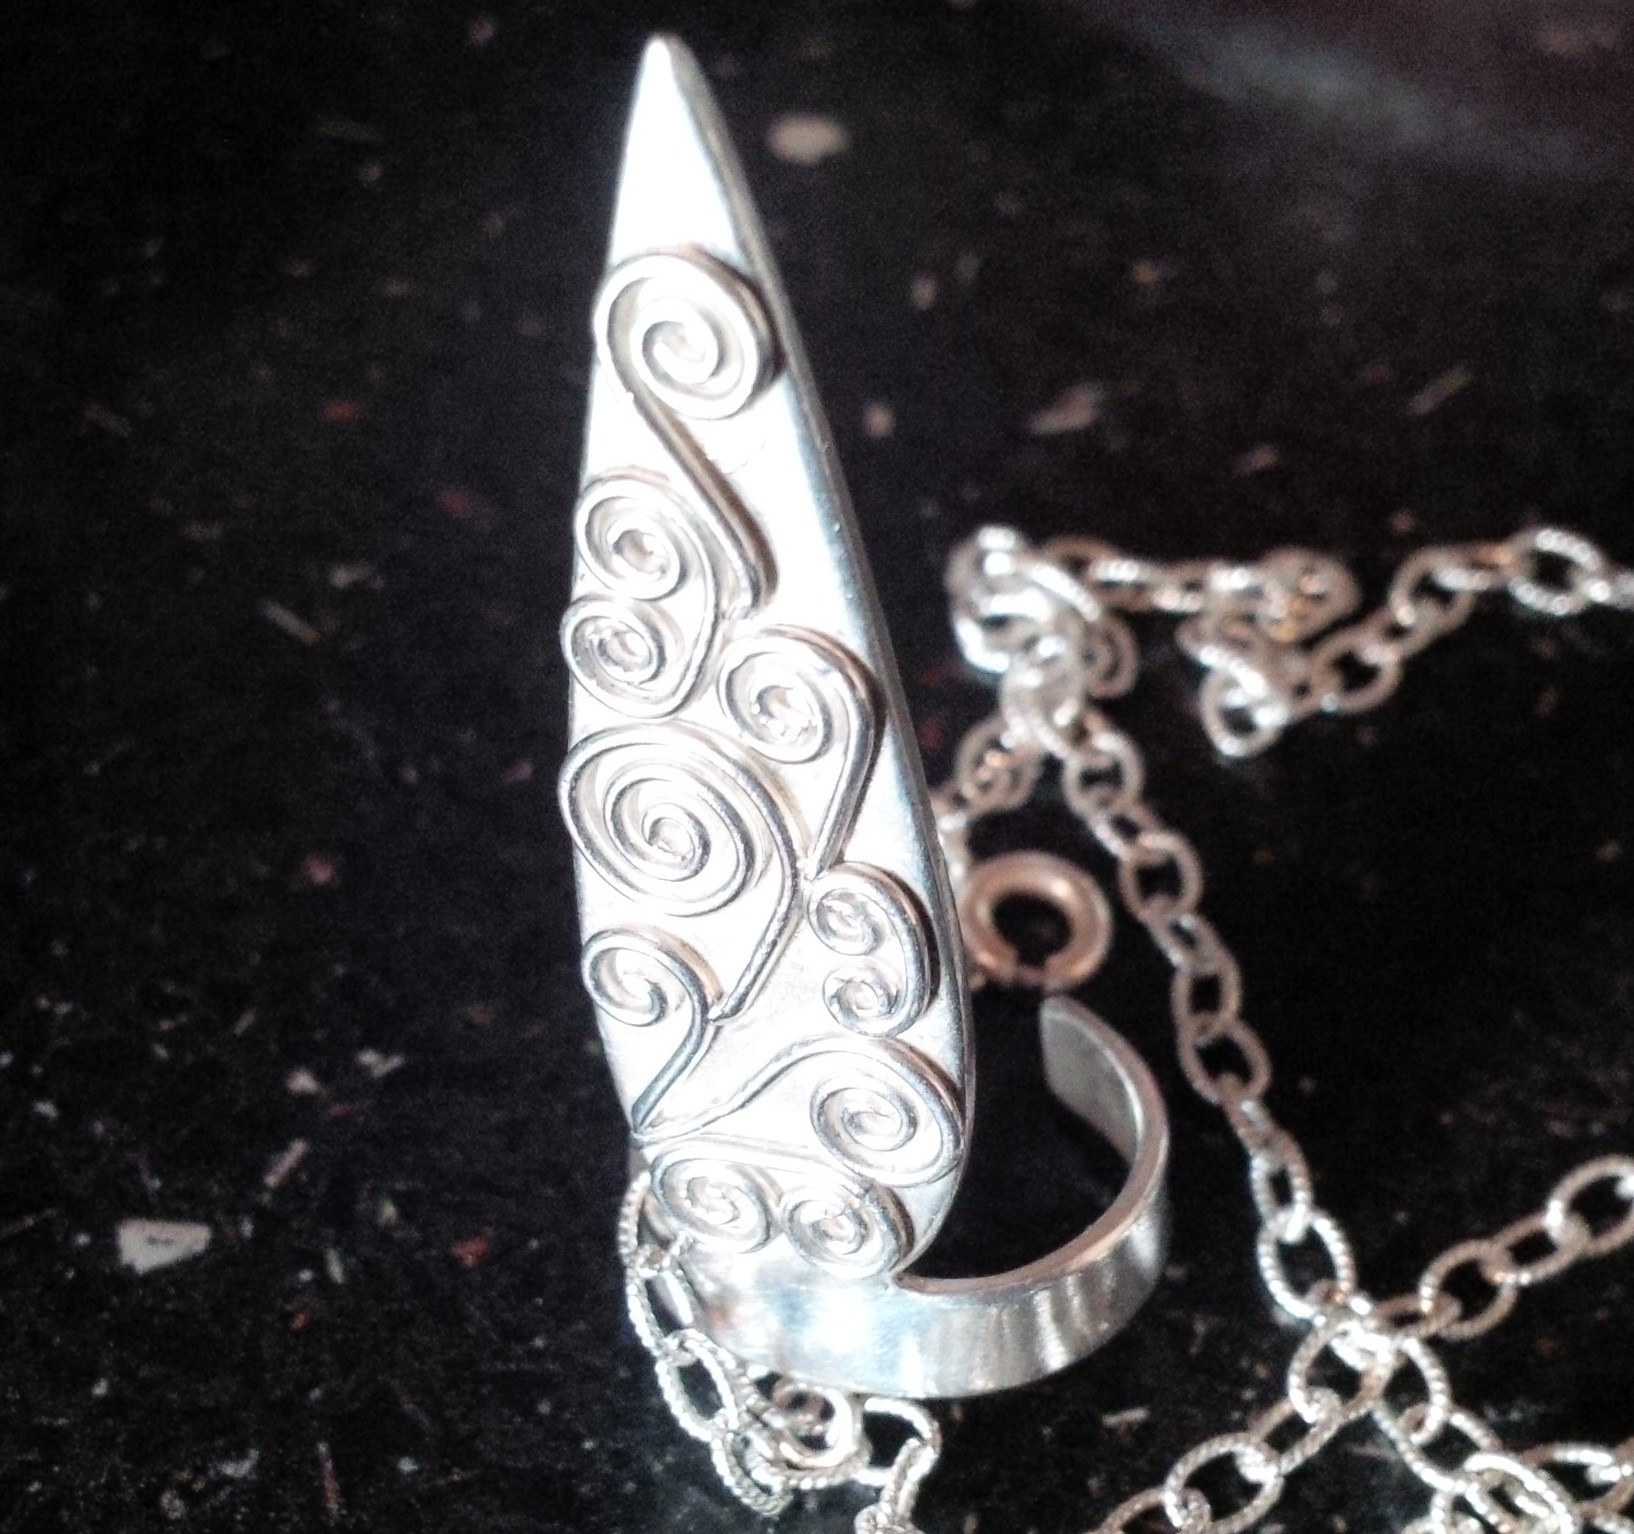 Pointed joined ring and bracelet with wirework detail